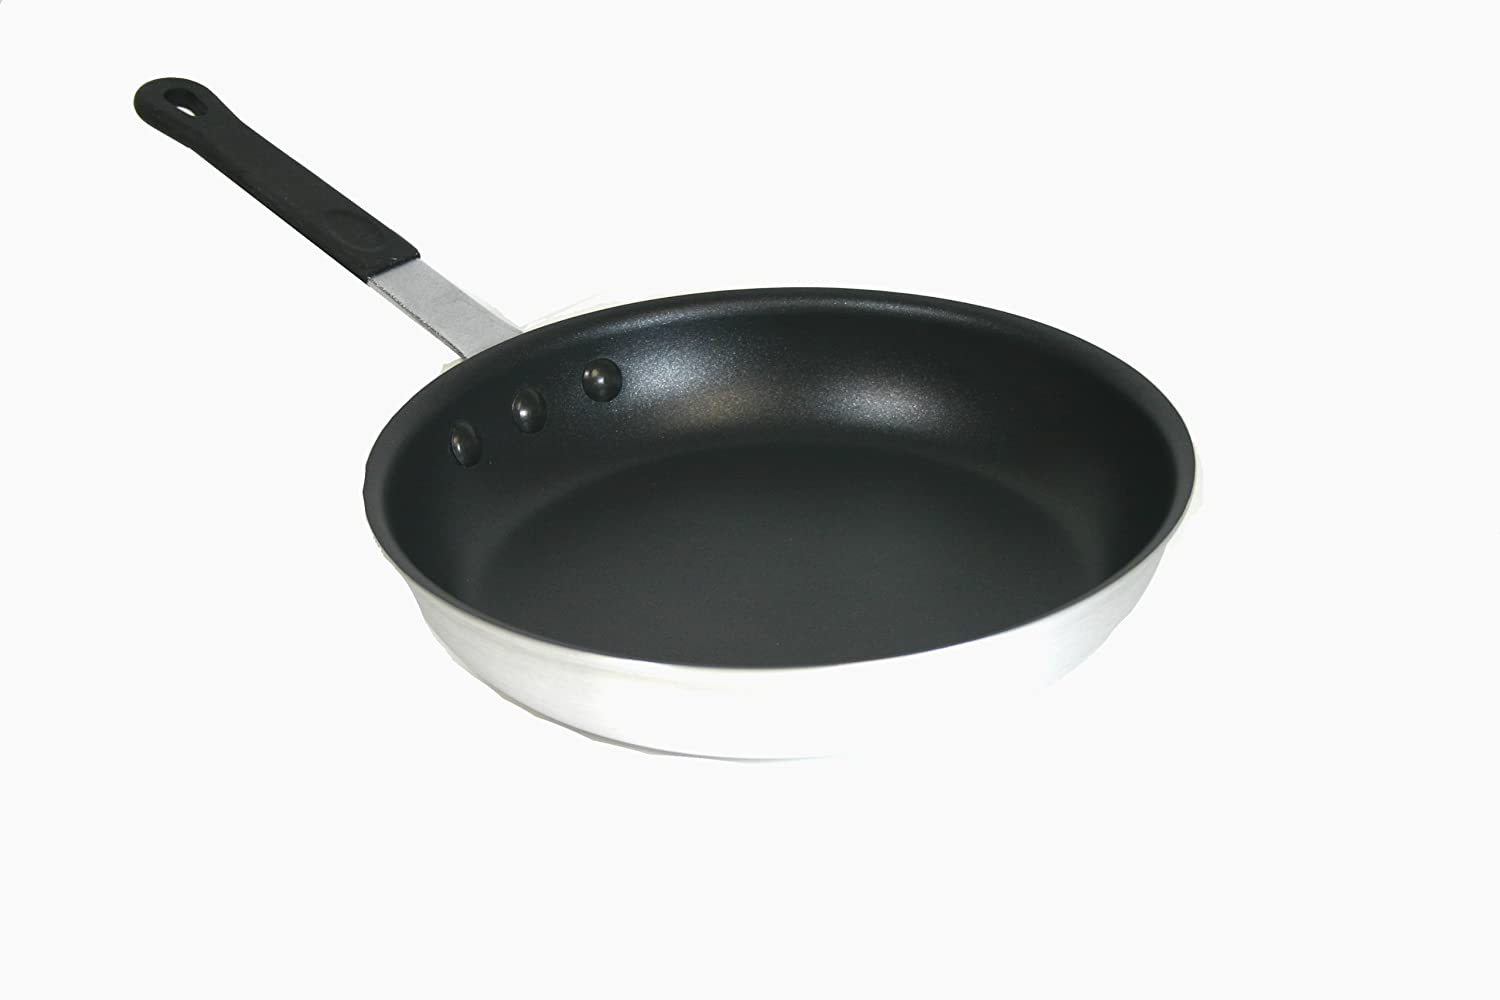 Paderno World Cuisine 7-Inch Non-stick Natural Aluminum Frying Pan A1611718